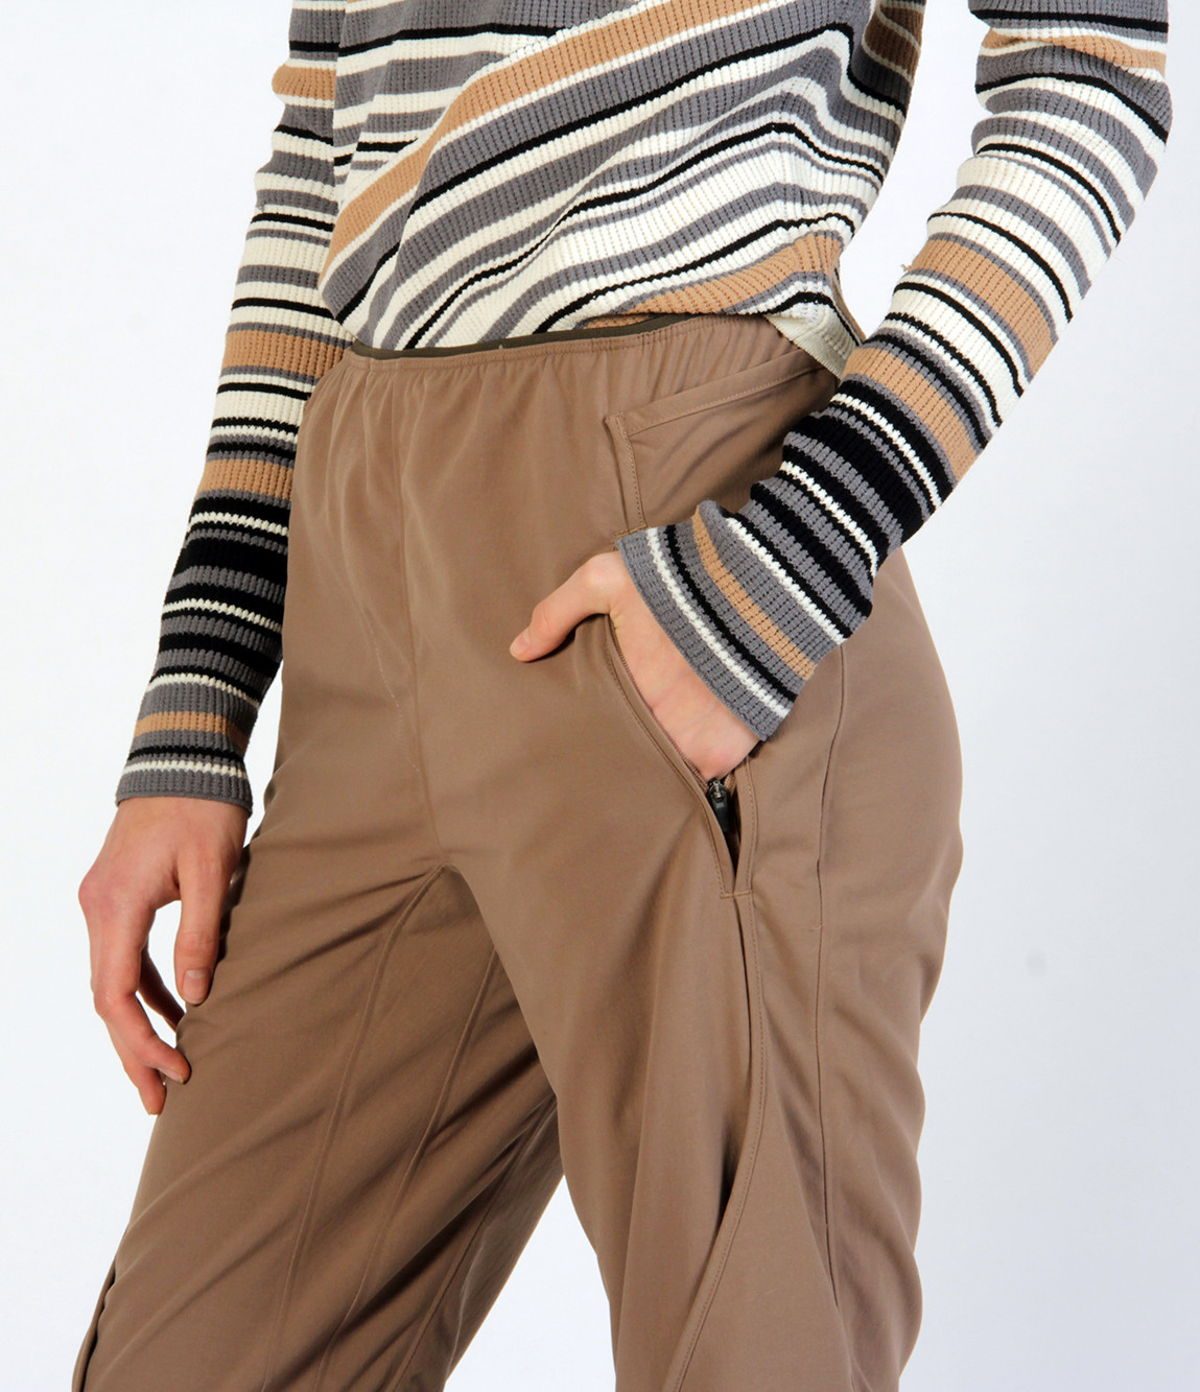 PURITY - GO ANYWHERE ELEGANT EXCEPTIONALLY COMFORTABLE PANT JAVA